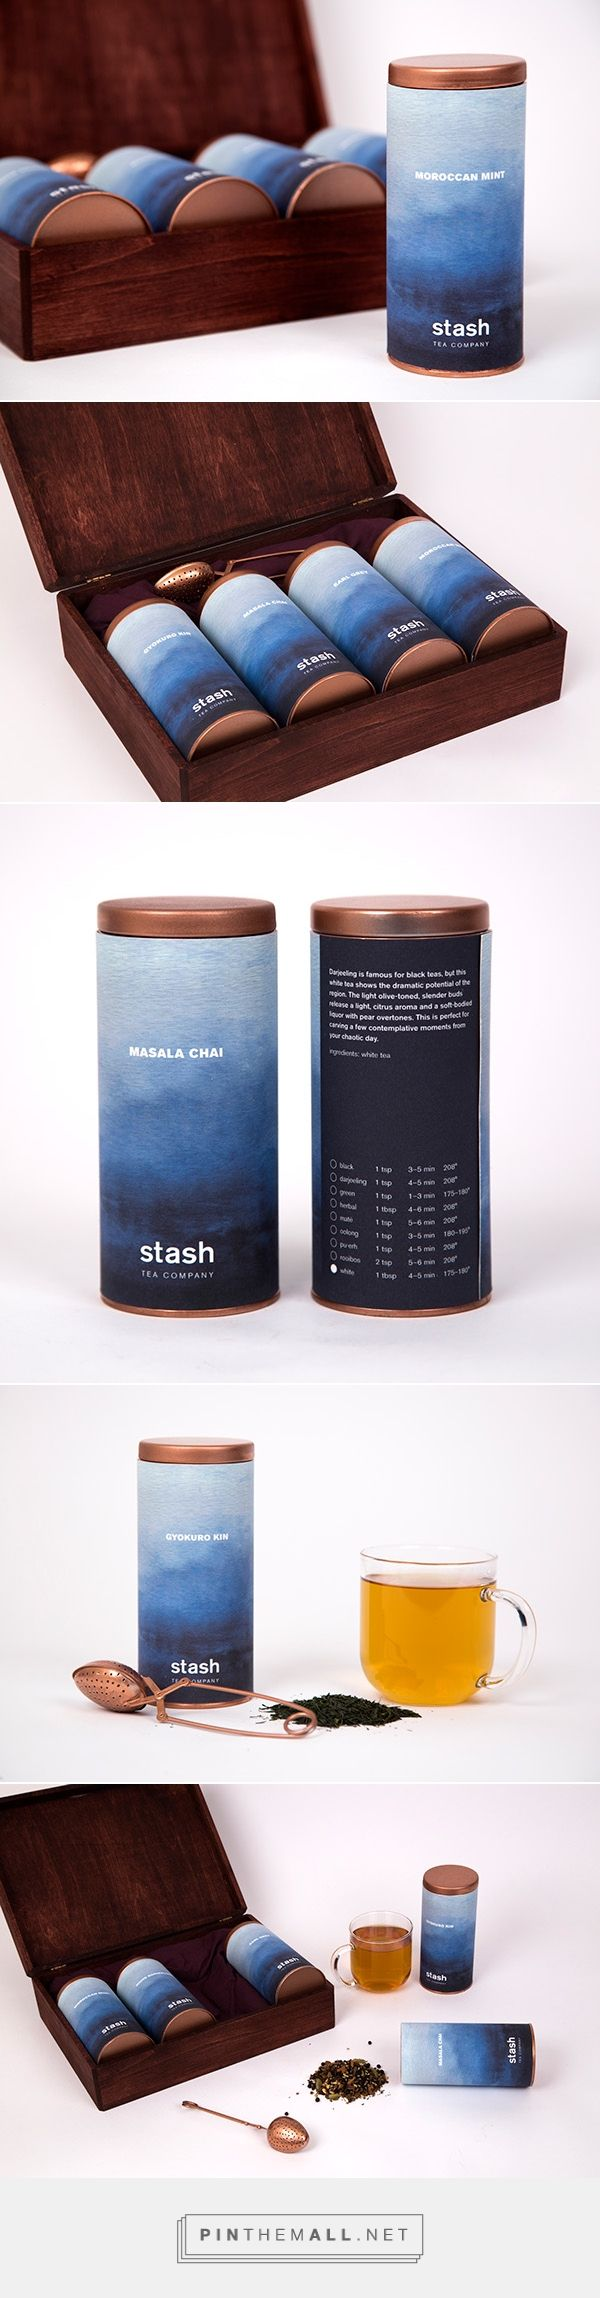 27 Beautiful Packaging Designs 23